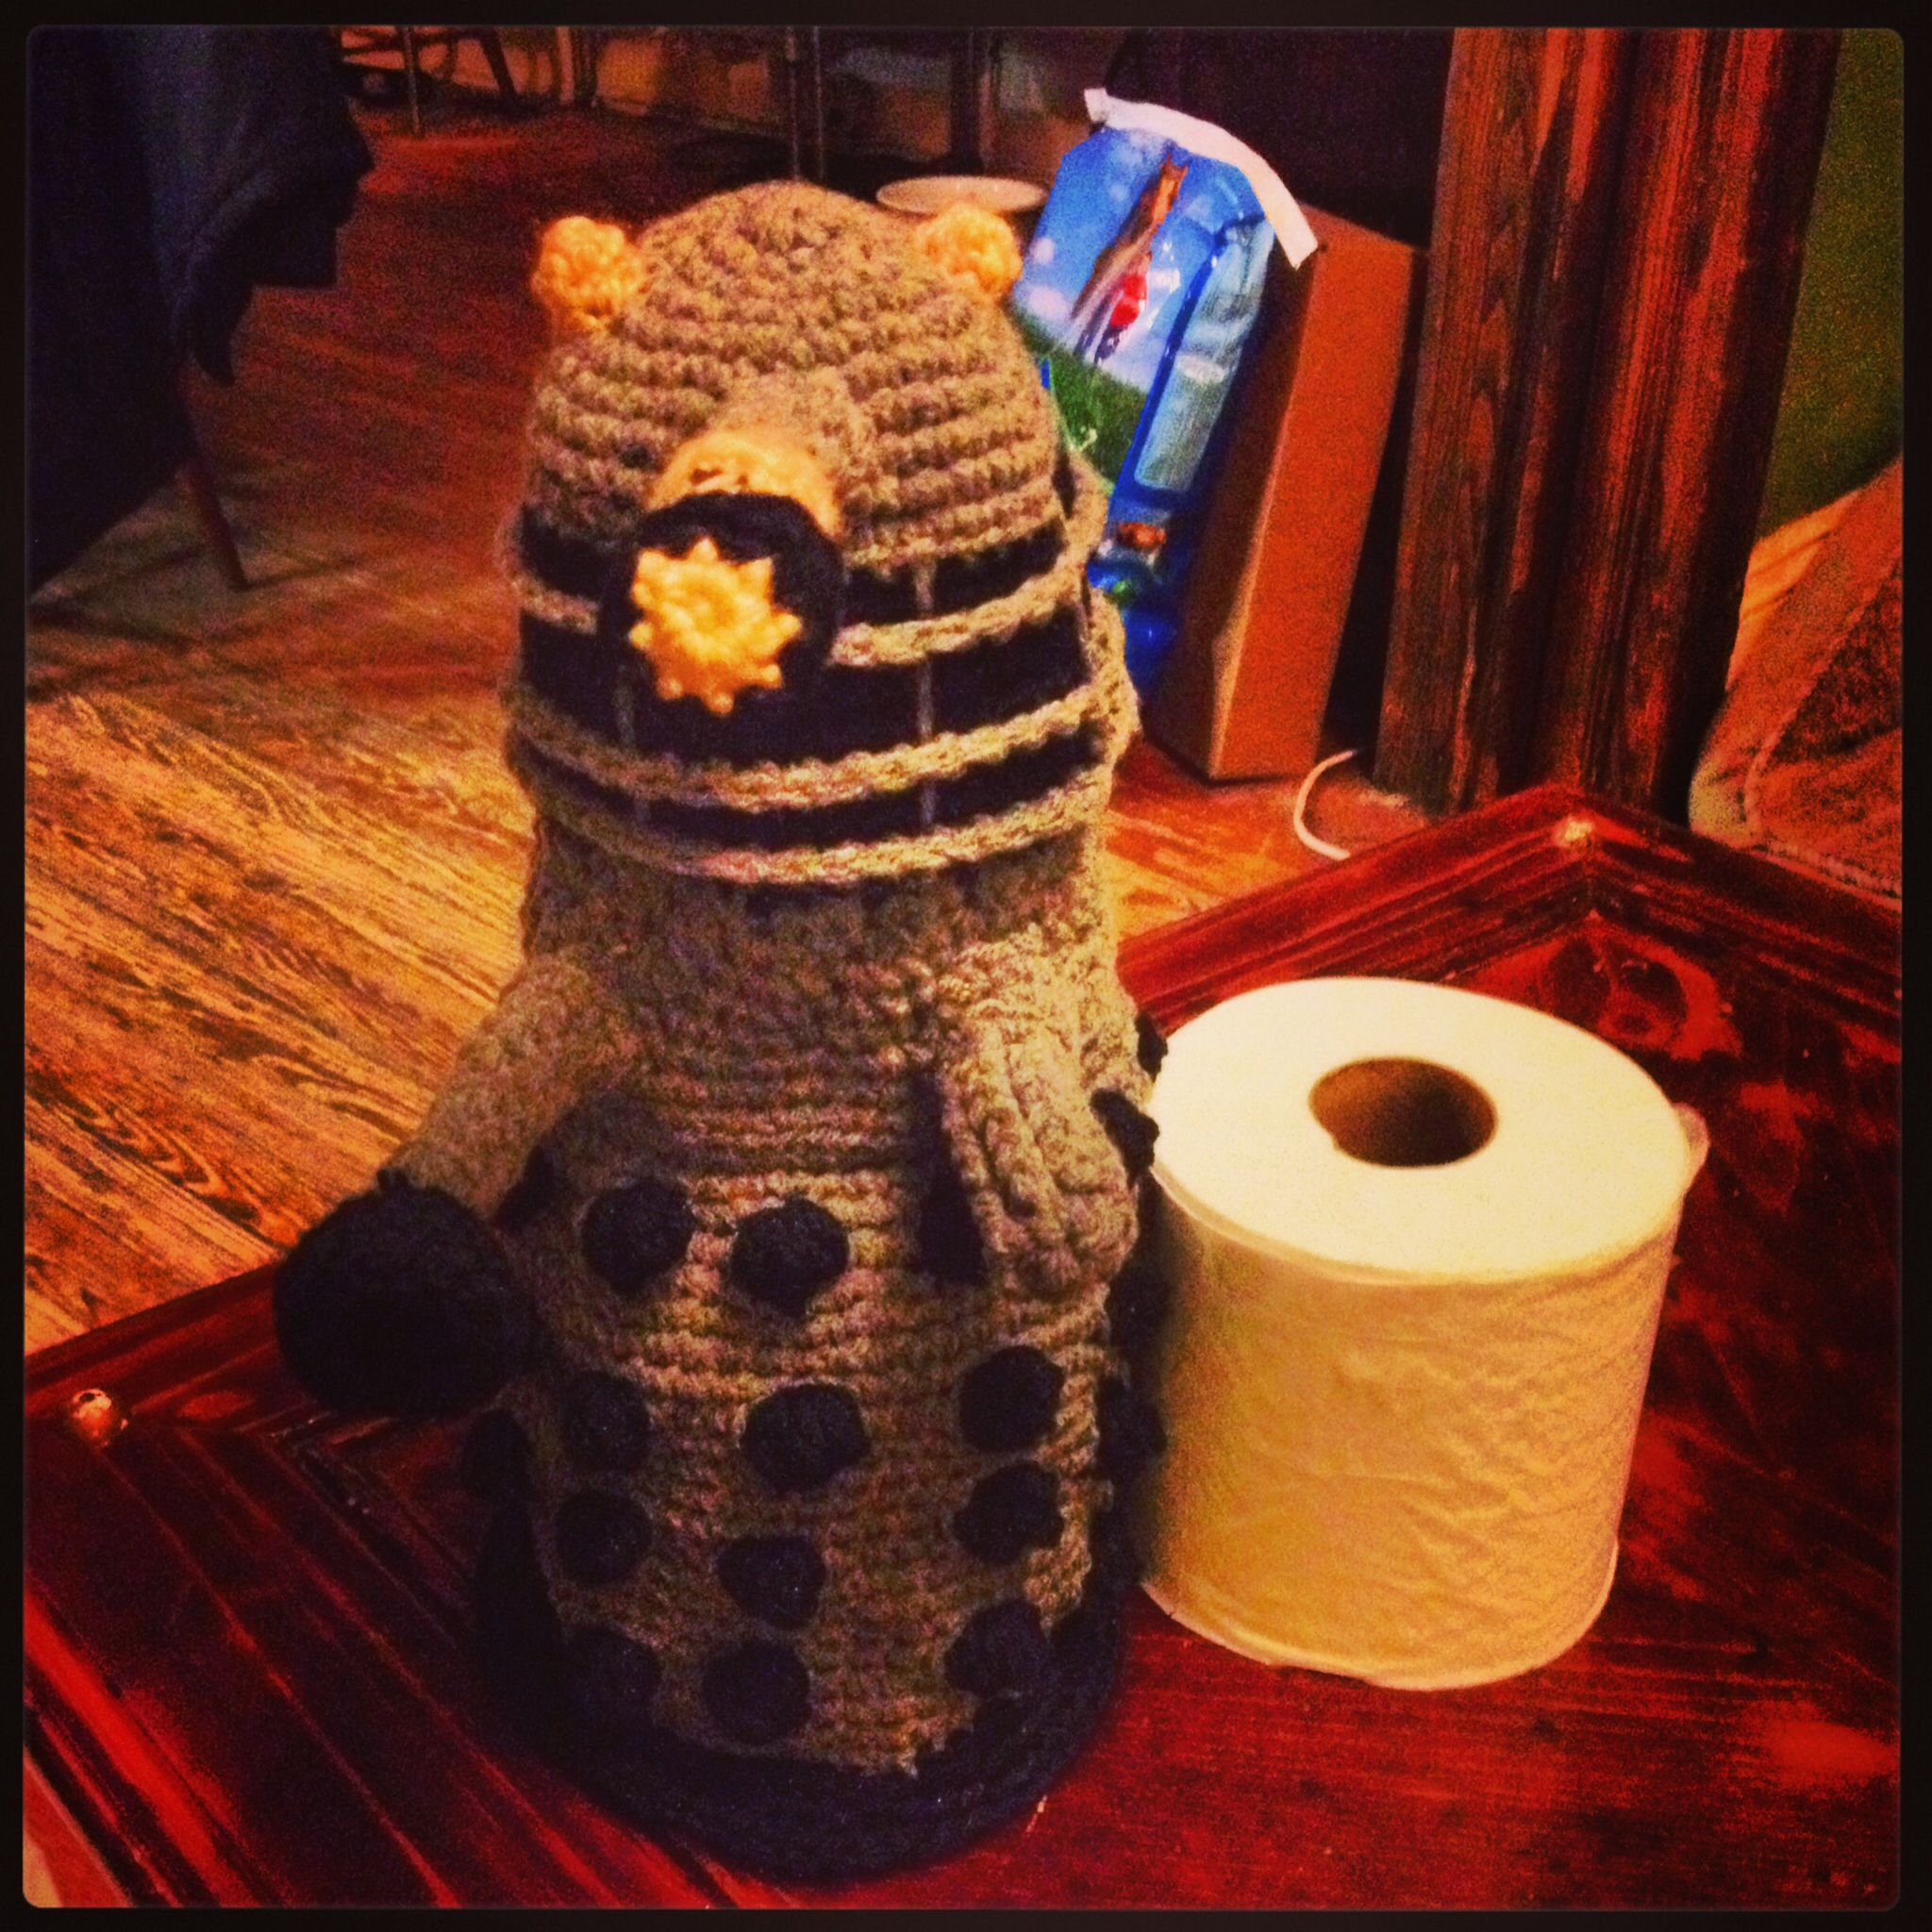 Dalek toilet paper roll cover | Completed projects | Pinterest ...